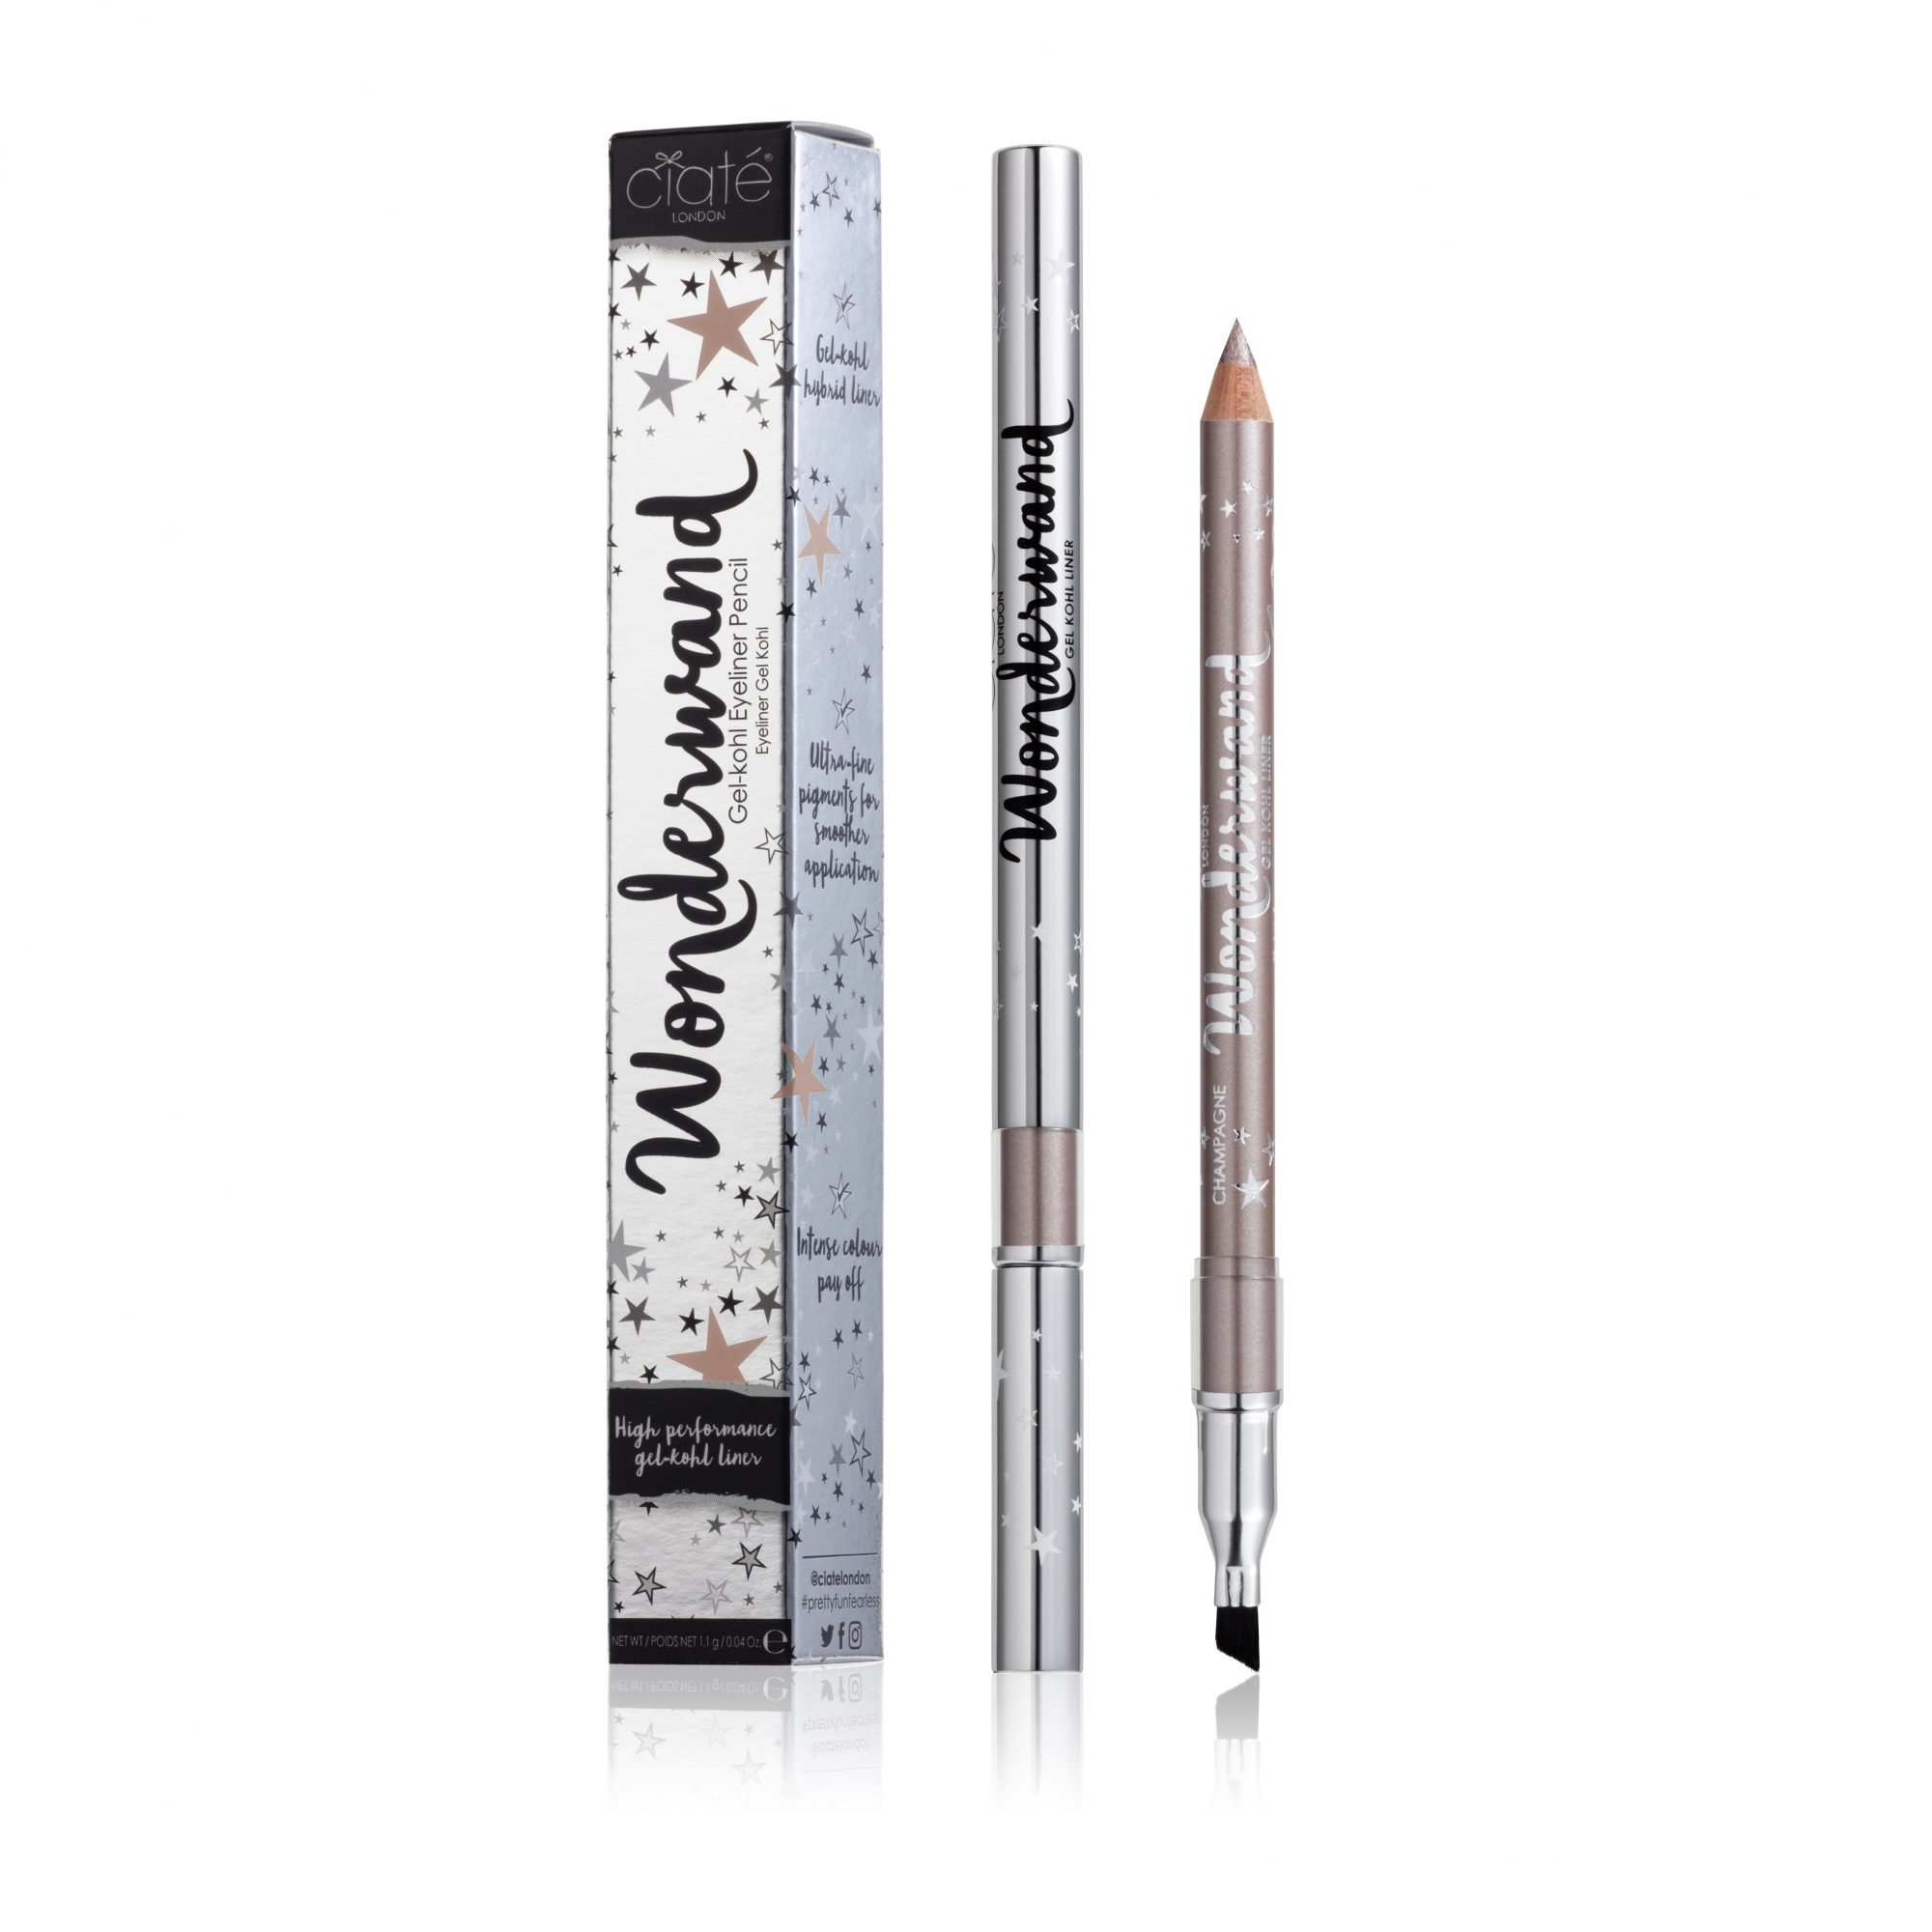 WWL008 Wonderwand Eyeliner Champagne Pack and Product edit